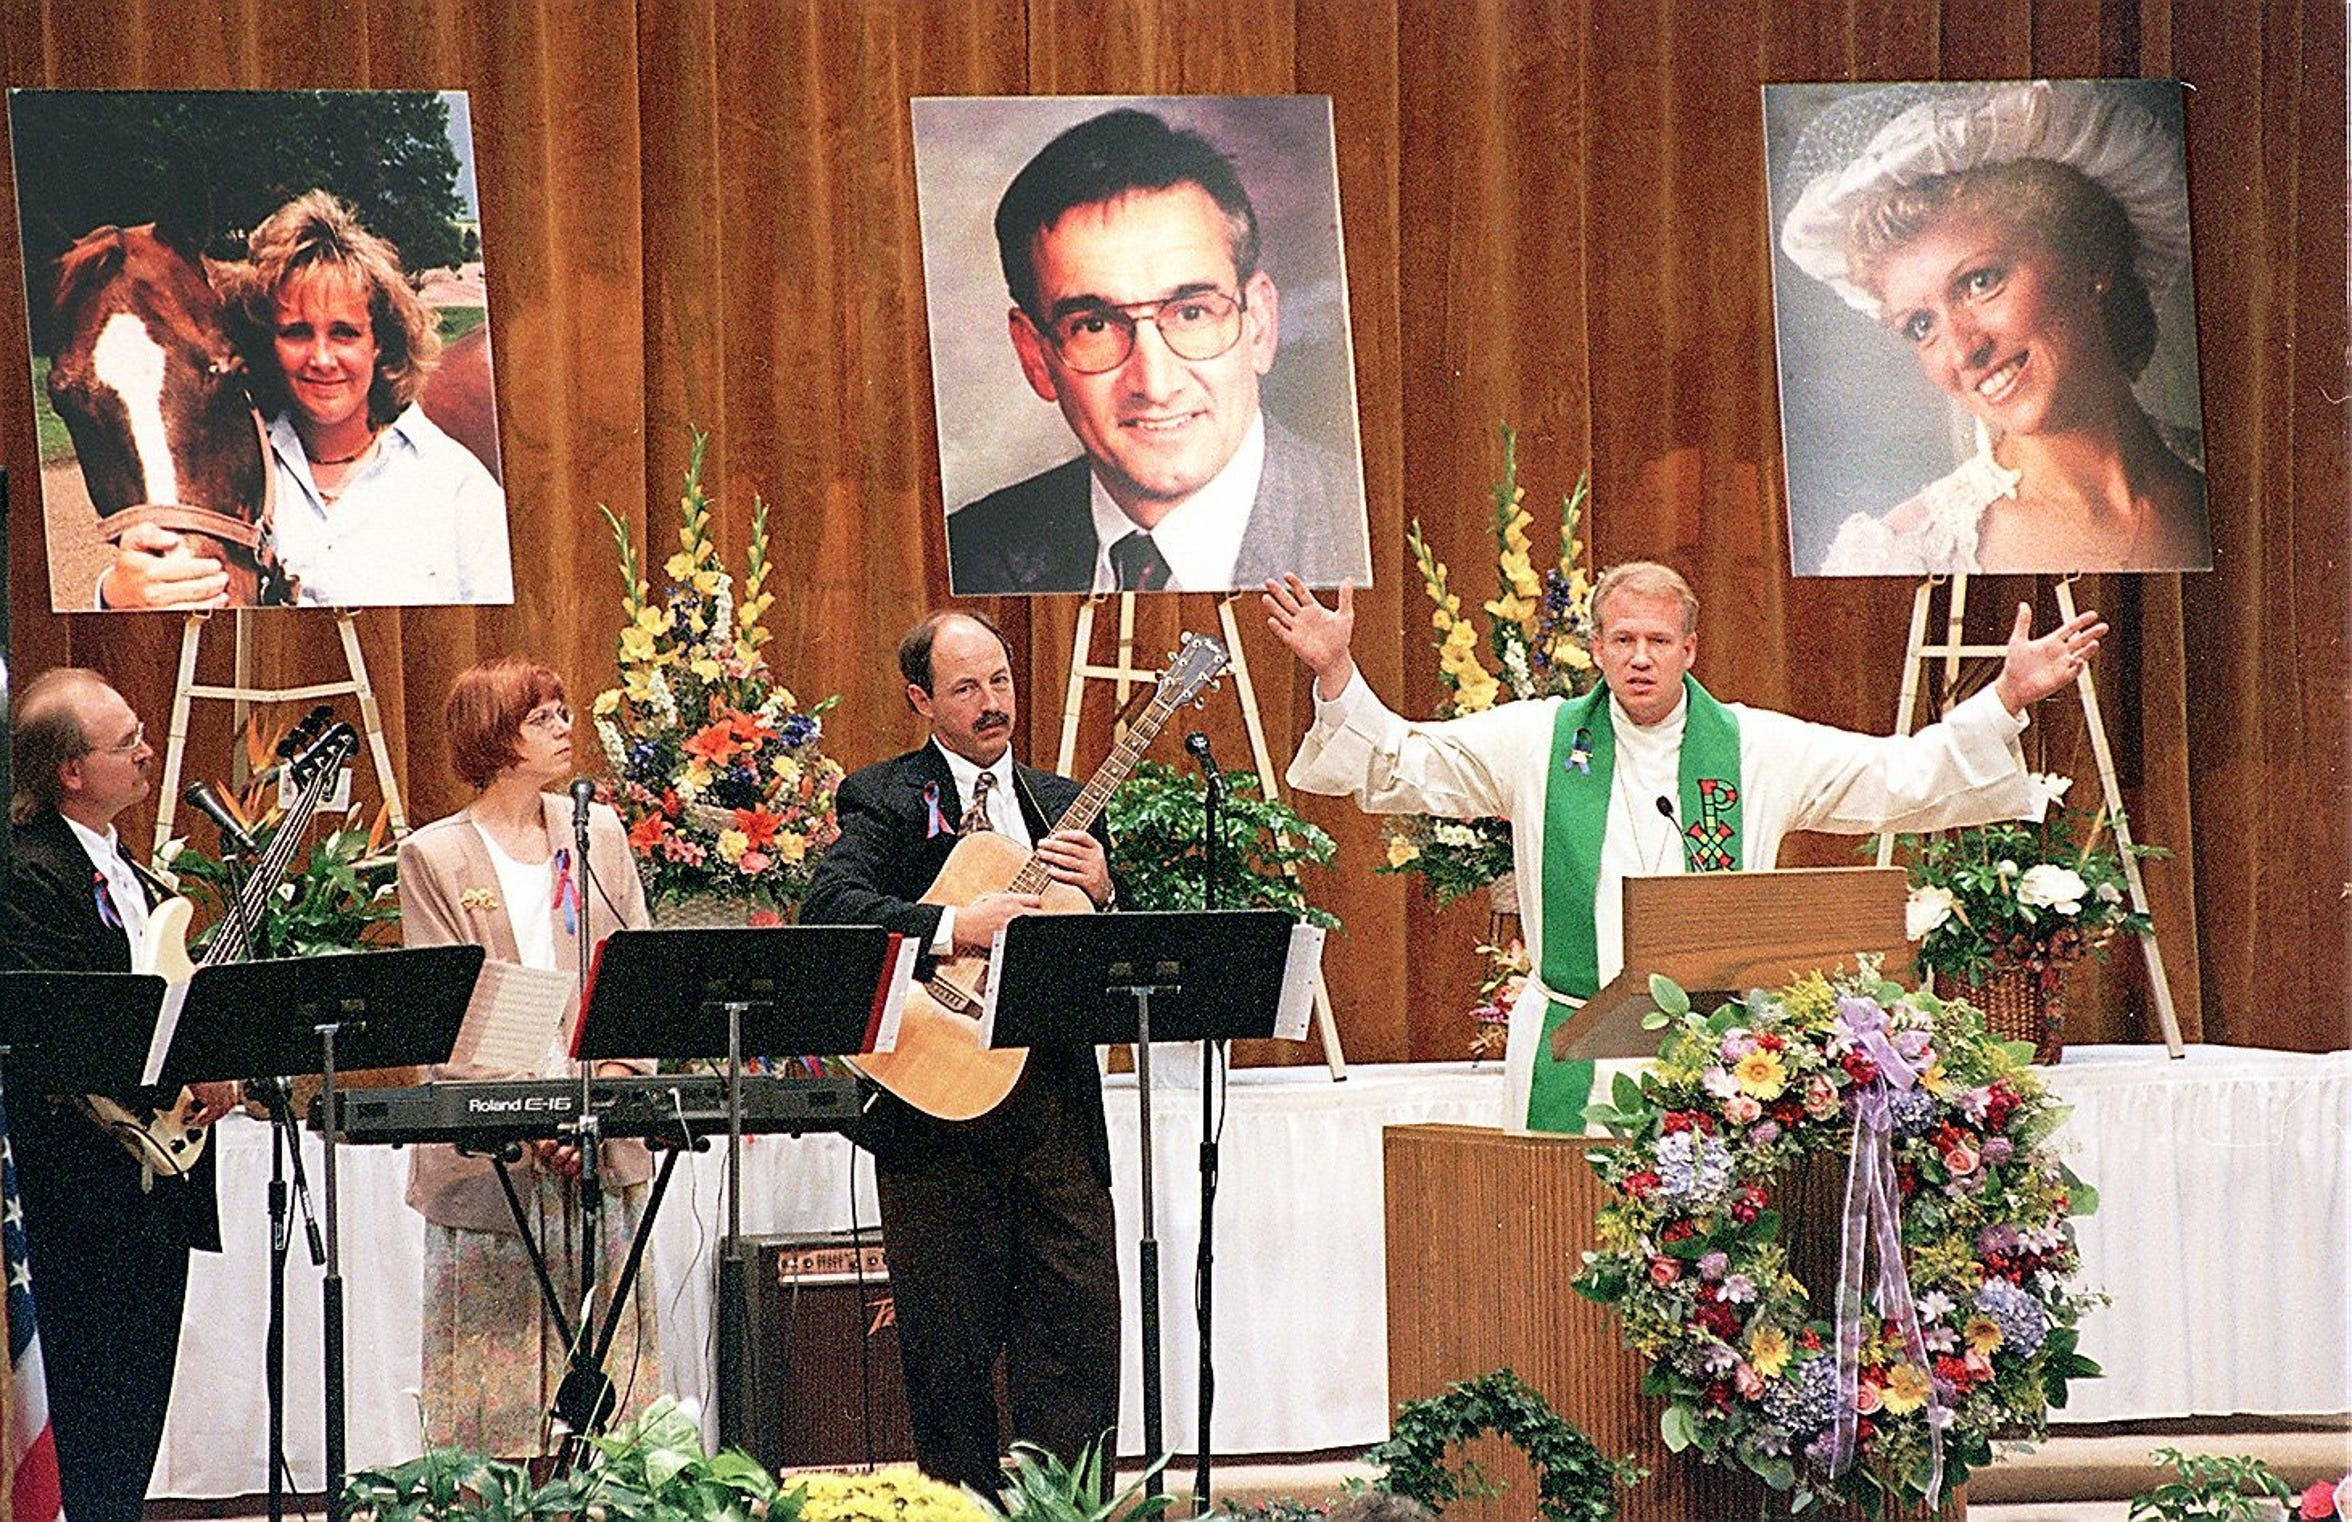 Pastor Brian Mortenson speaks  during a memorial service for three Sioux Valley Hospital workers who perished in a helicopter crash. Photographs of those who died - Shannon Nolte, Merton Tiffany and Melissa Wittry - are shown behind Mortenson.